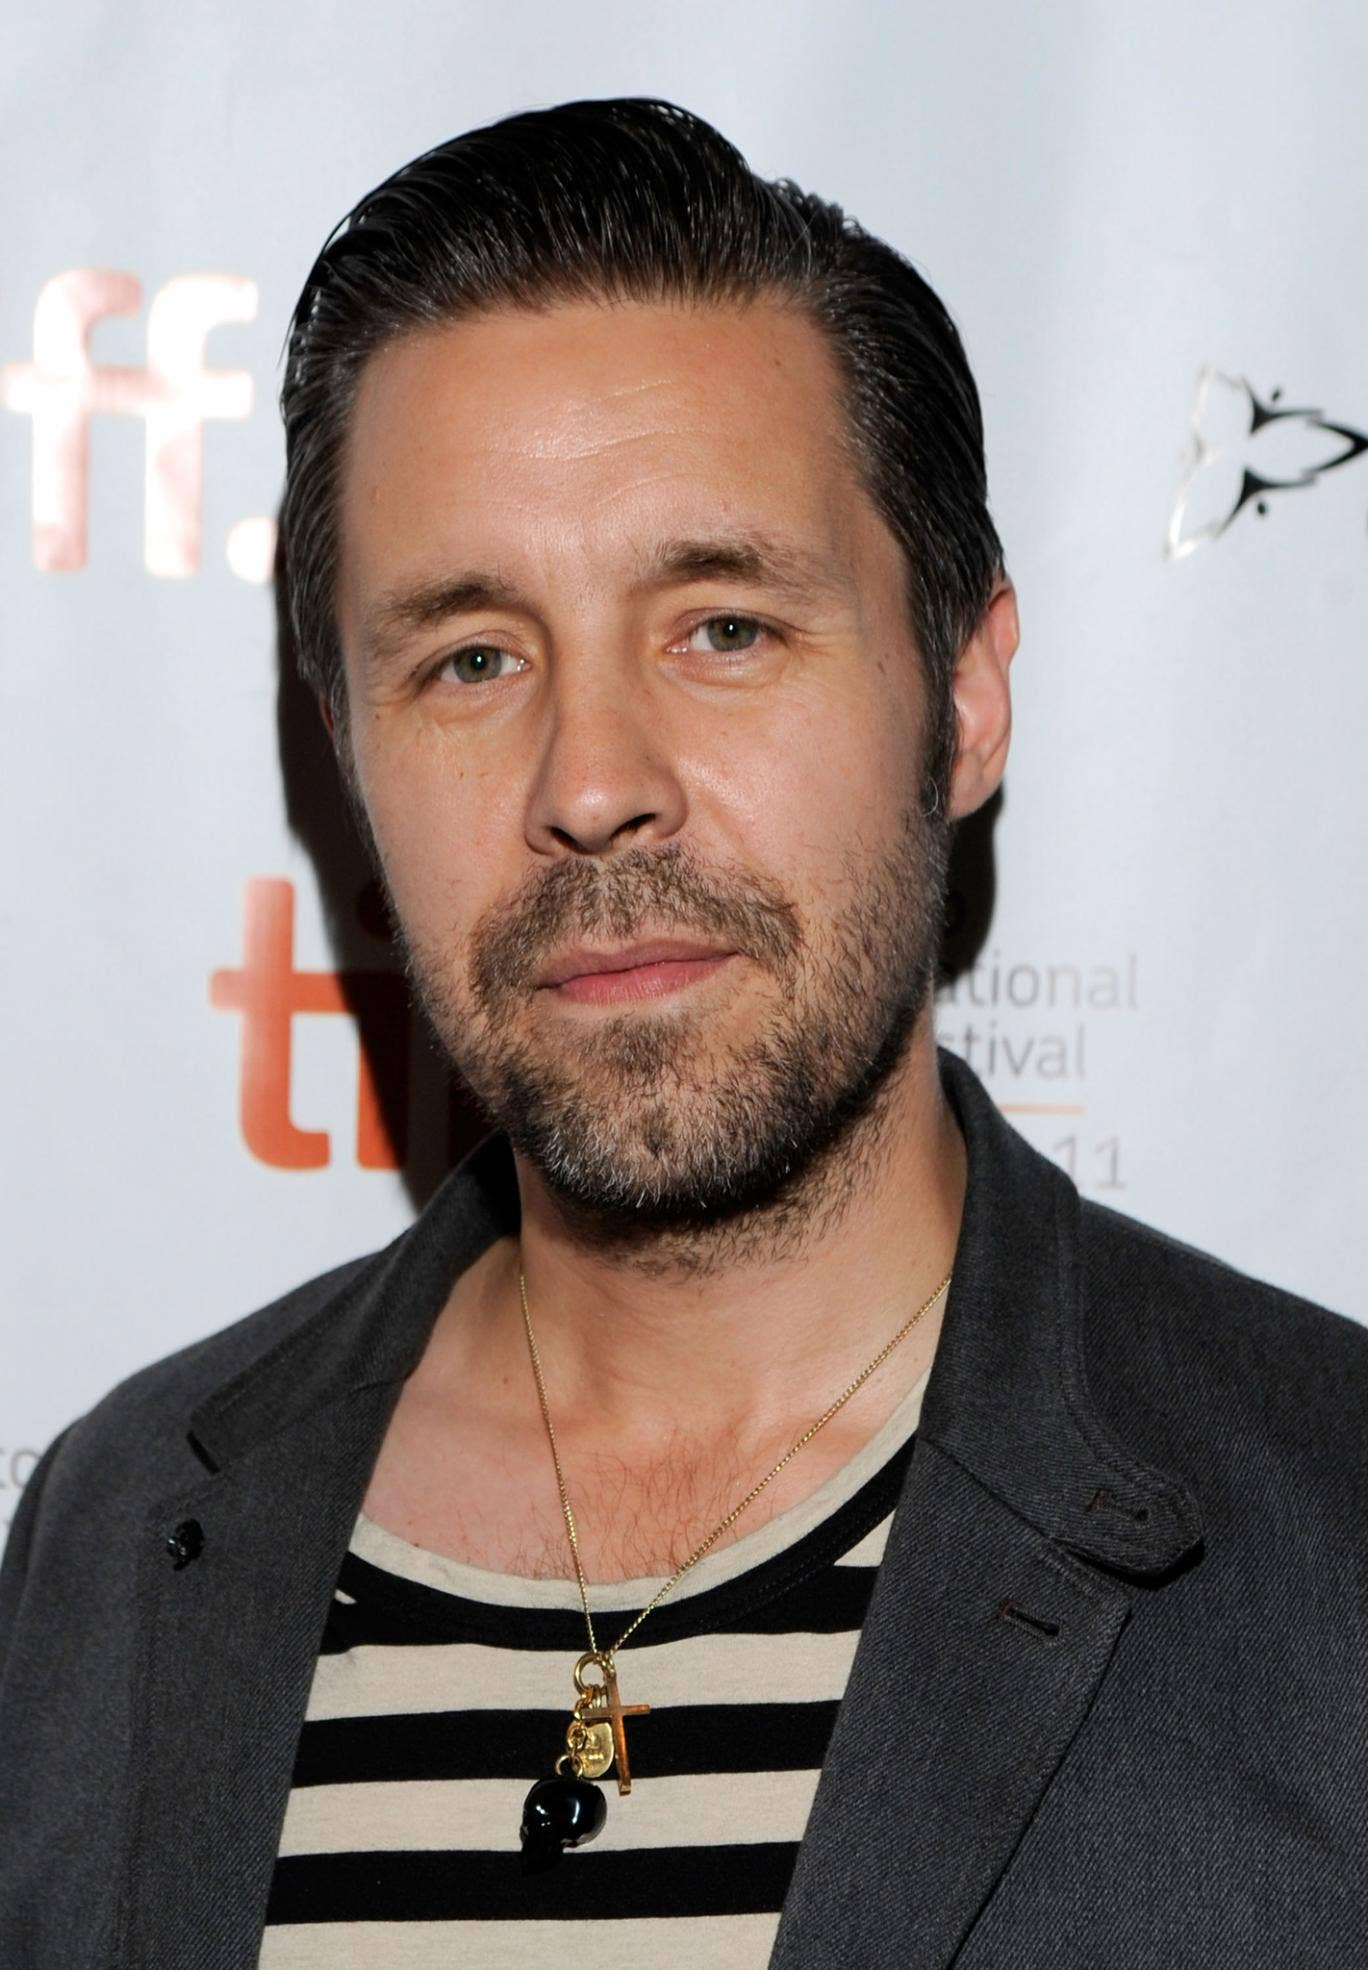 Actor Paddy Considine has been diagnosed with a rare condition that makes him sensitive to light